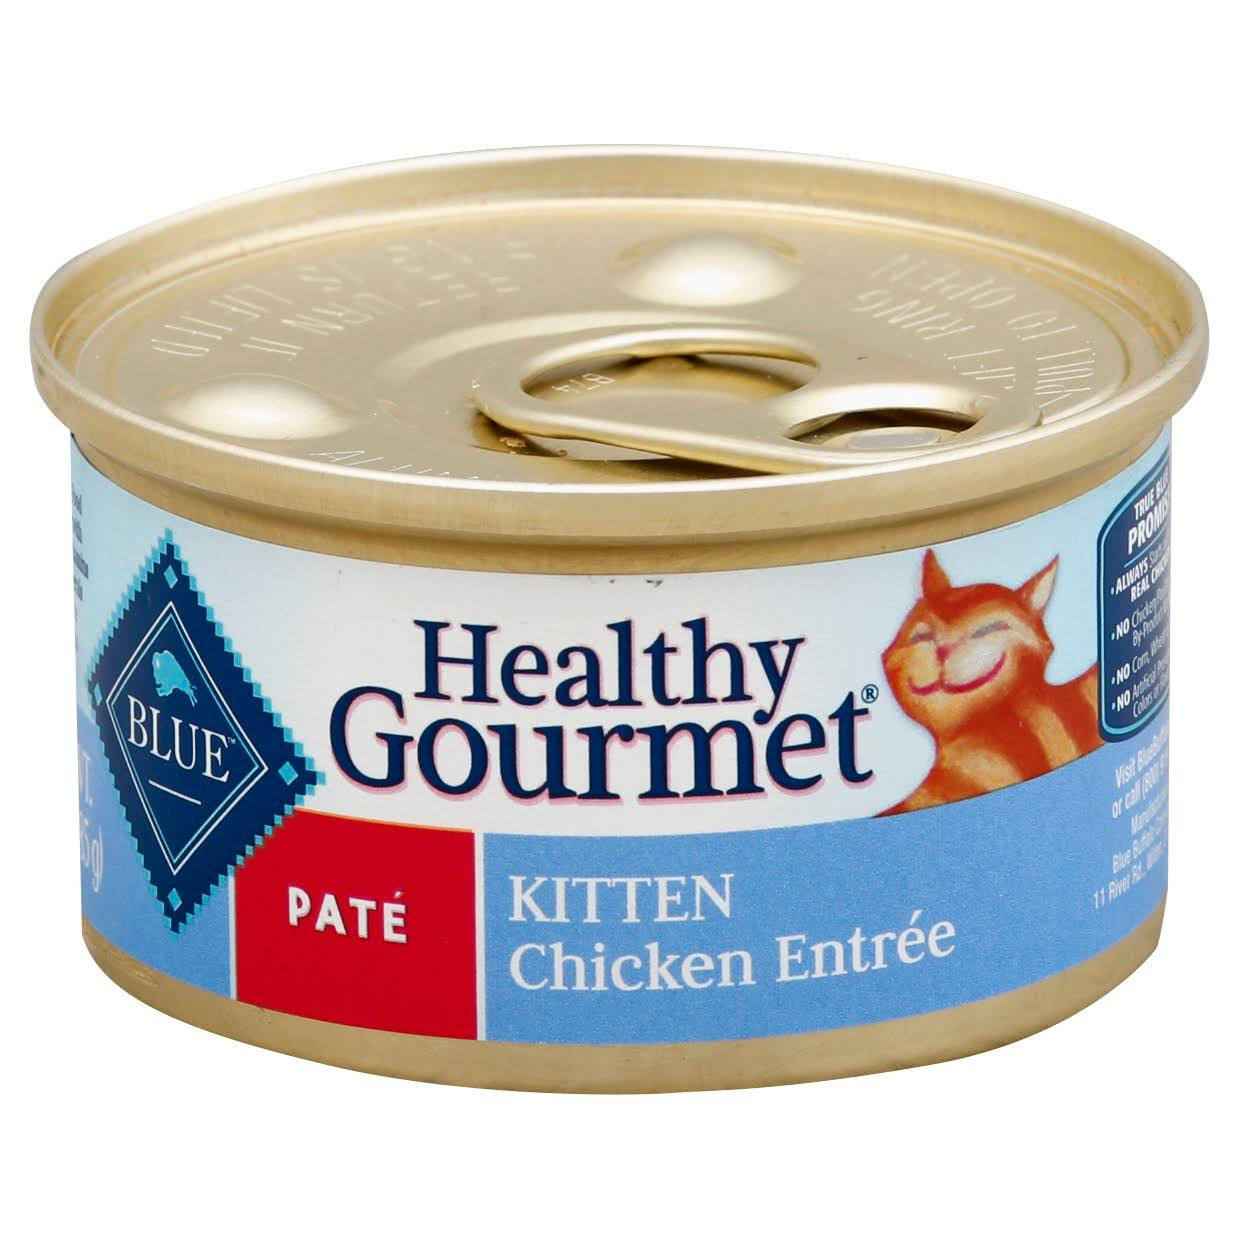 Blue Healthy Gourmet Food for Cats, Natural, Pate, Kitten, Chicken Entree - 3 oz